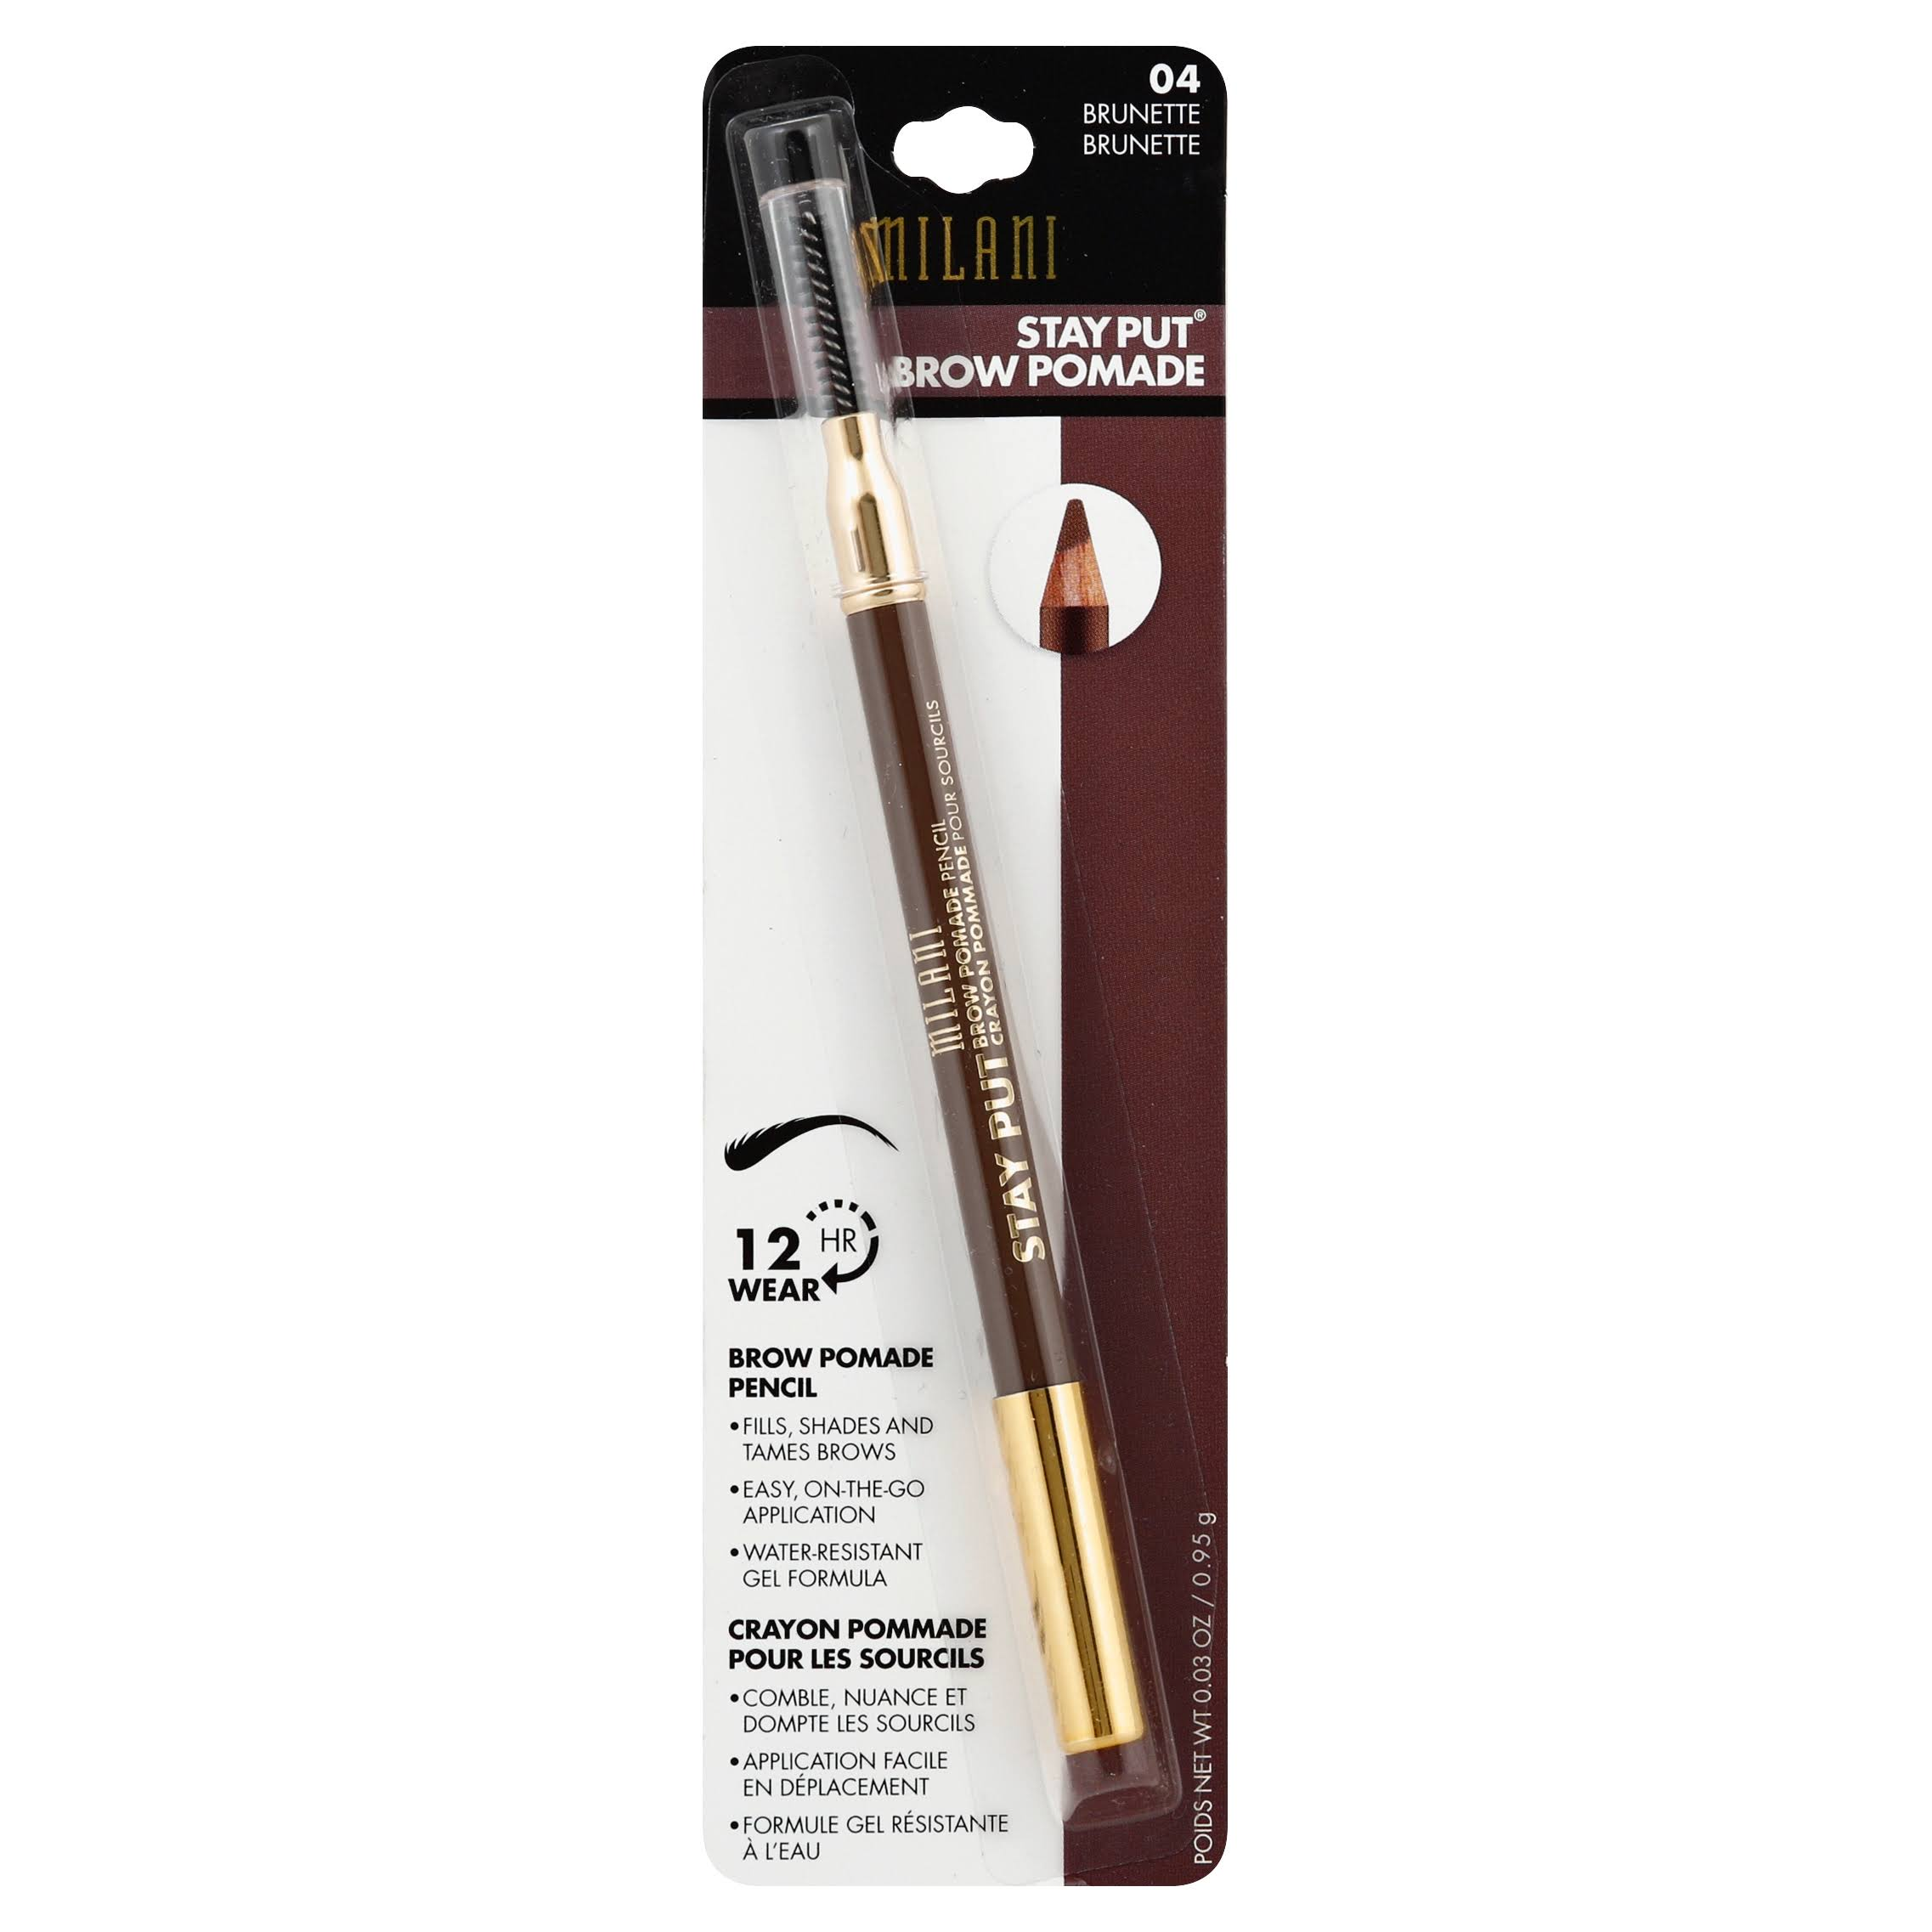 Milani Stay Put Brow Pomade Pencil - 04 Brunette, 0.04oz